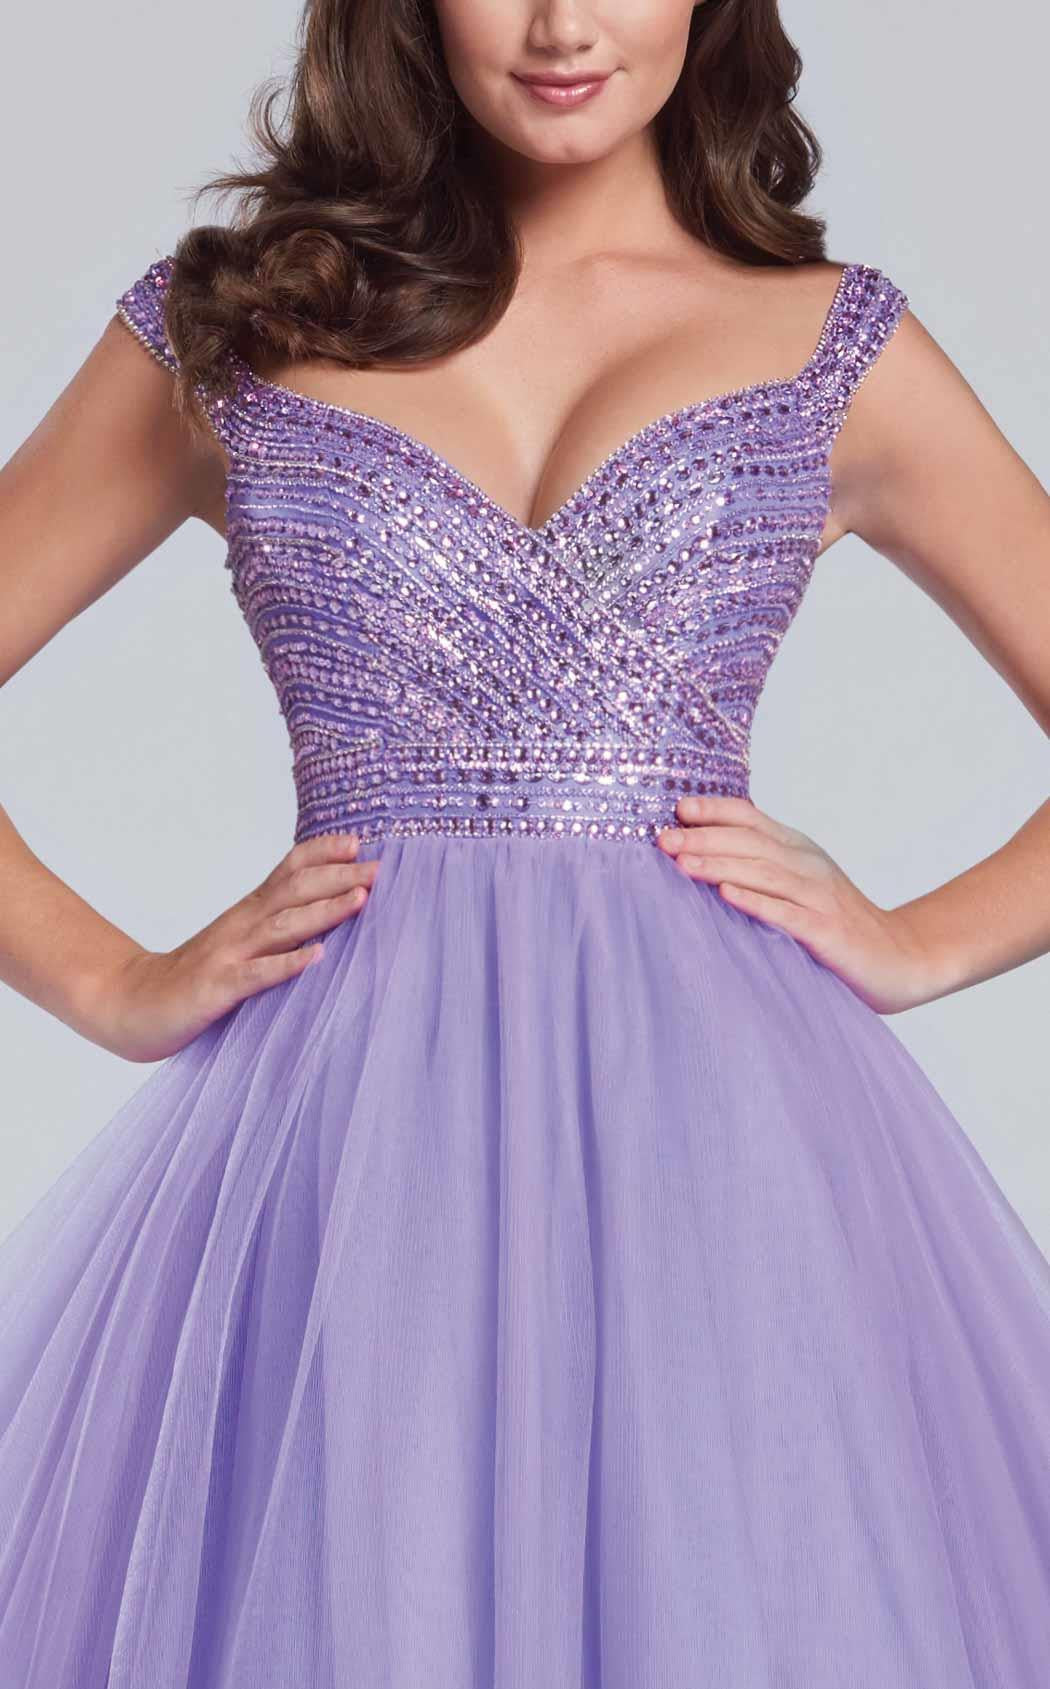 Lavender Ball Gown   Judee\'s